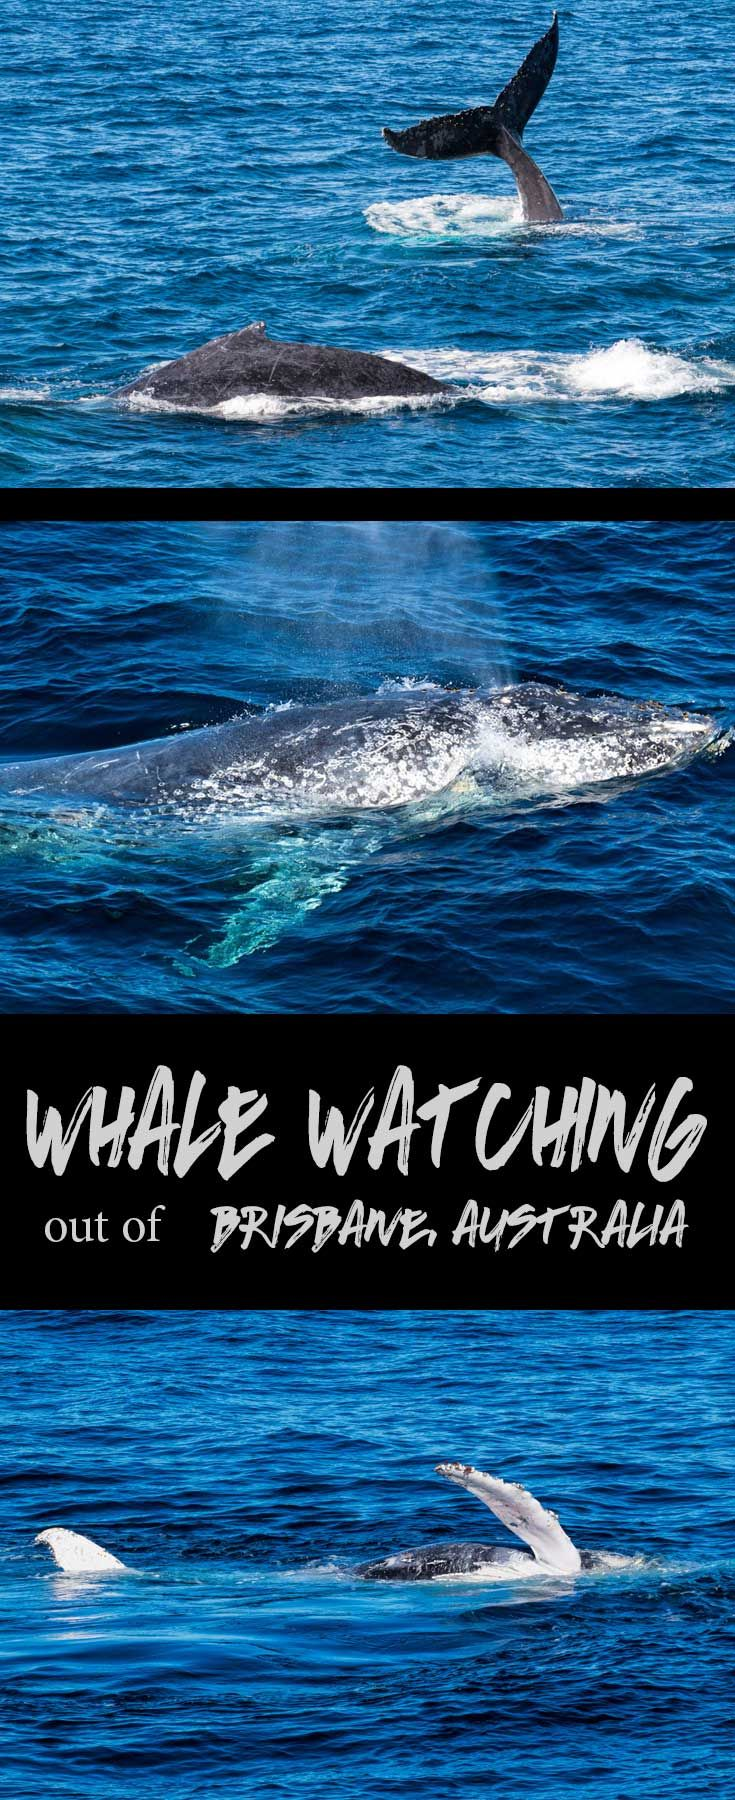 Looking for fun outdoor activities in Brisbane this winter?  Consider a whale watching cruise on Morton Bay, as the whales cruise past on their annual migration path.